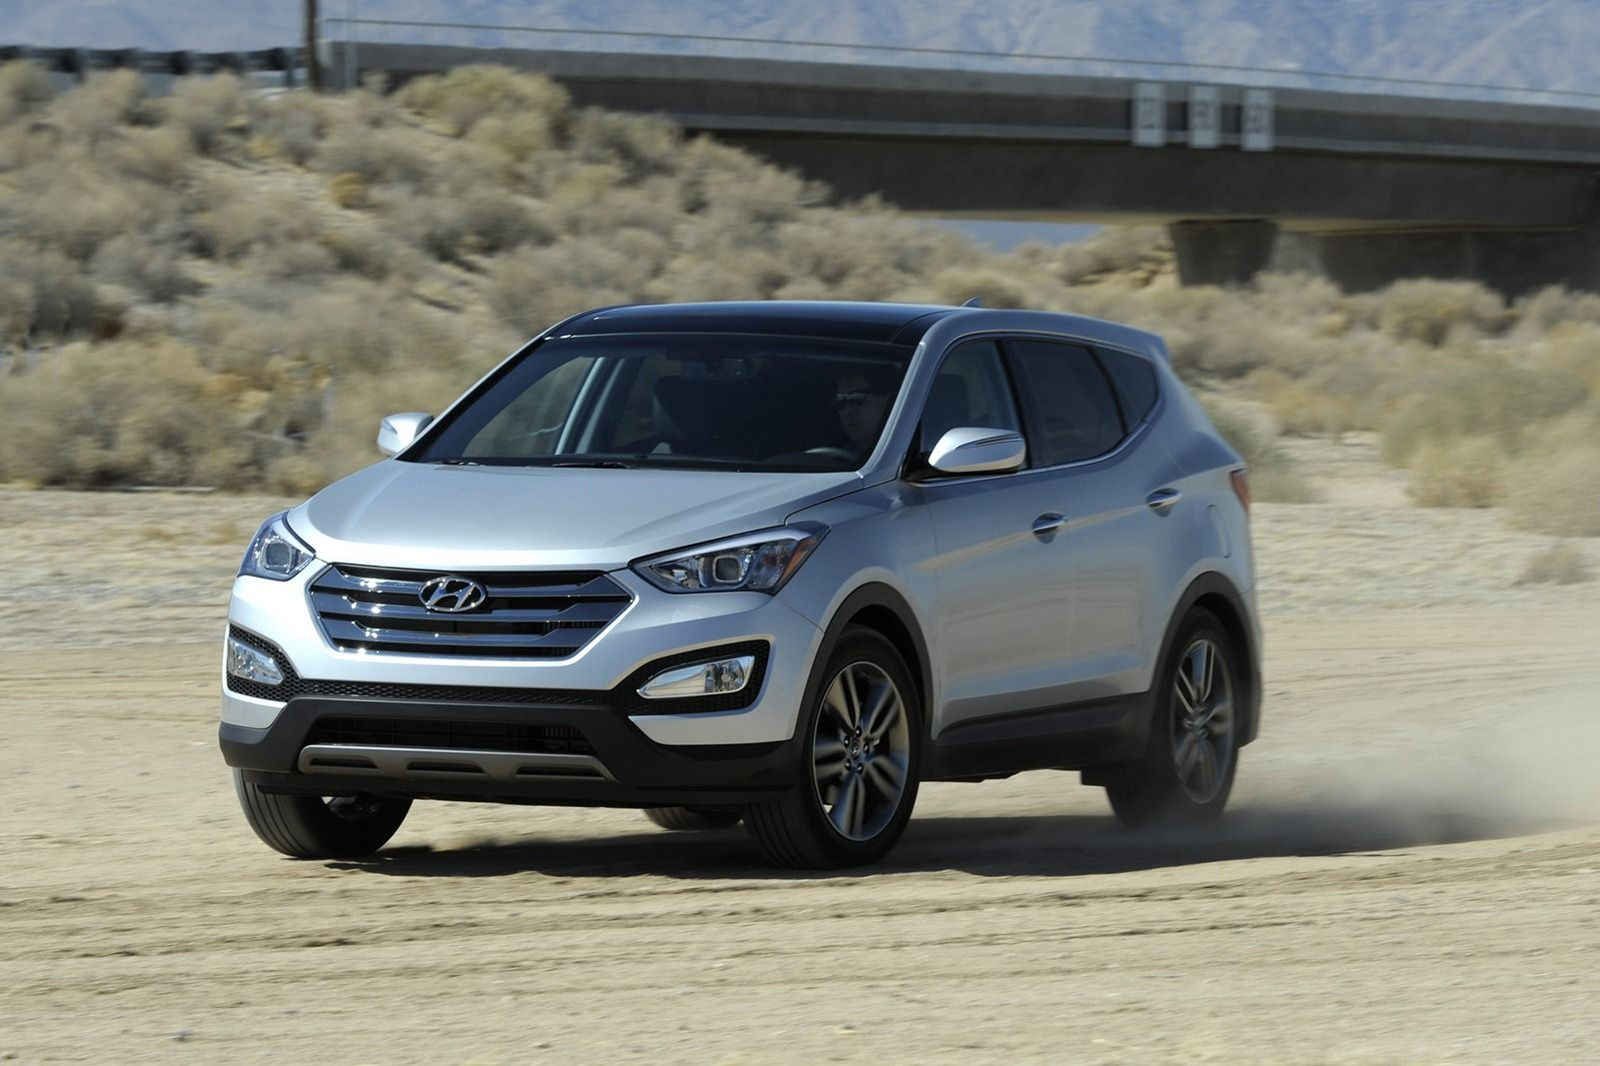 Hyundai Reveals 2013 Santa Fe Sport and Santa Fe LWB for